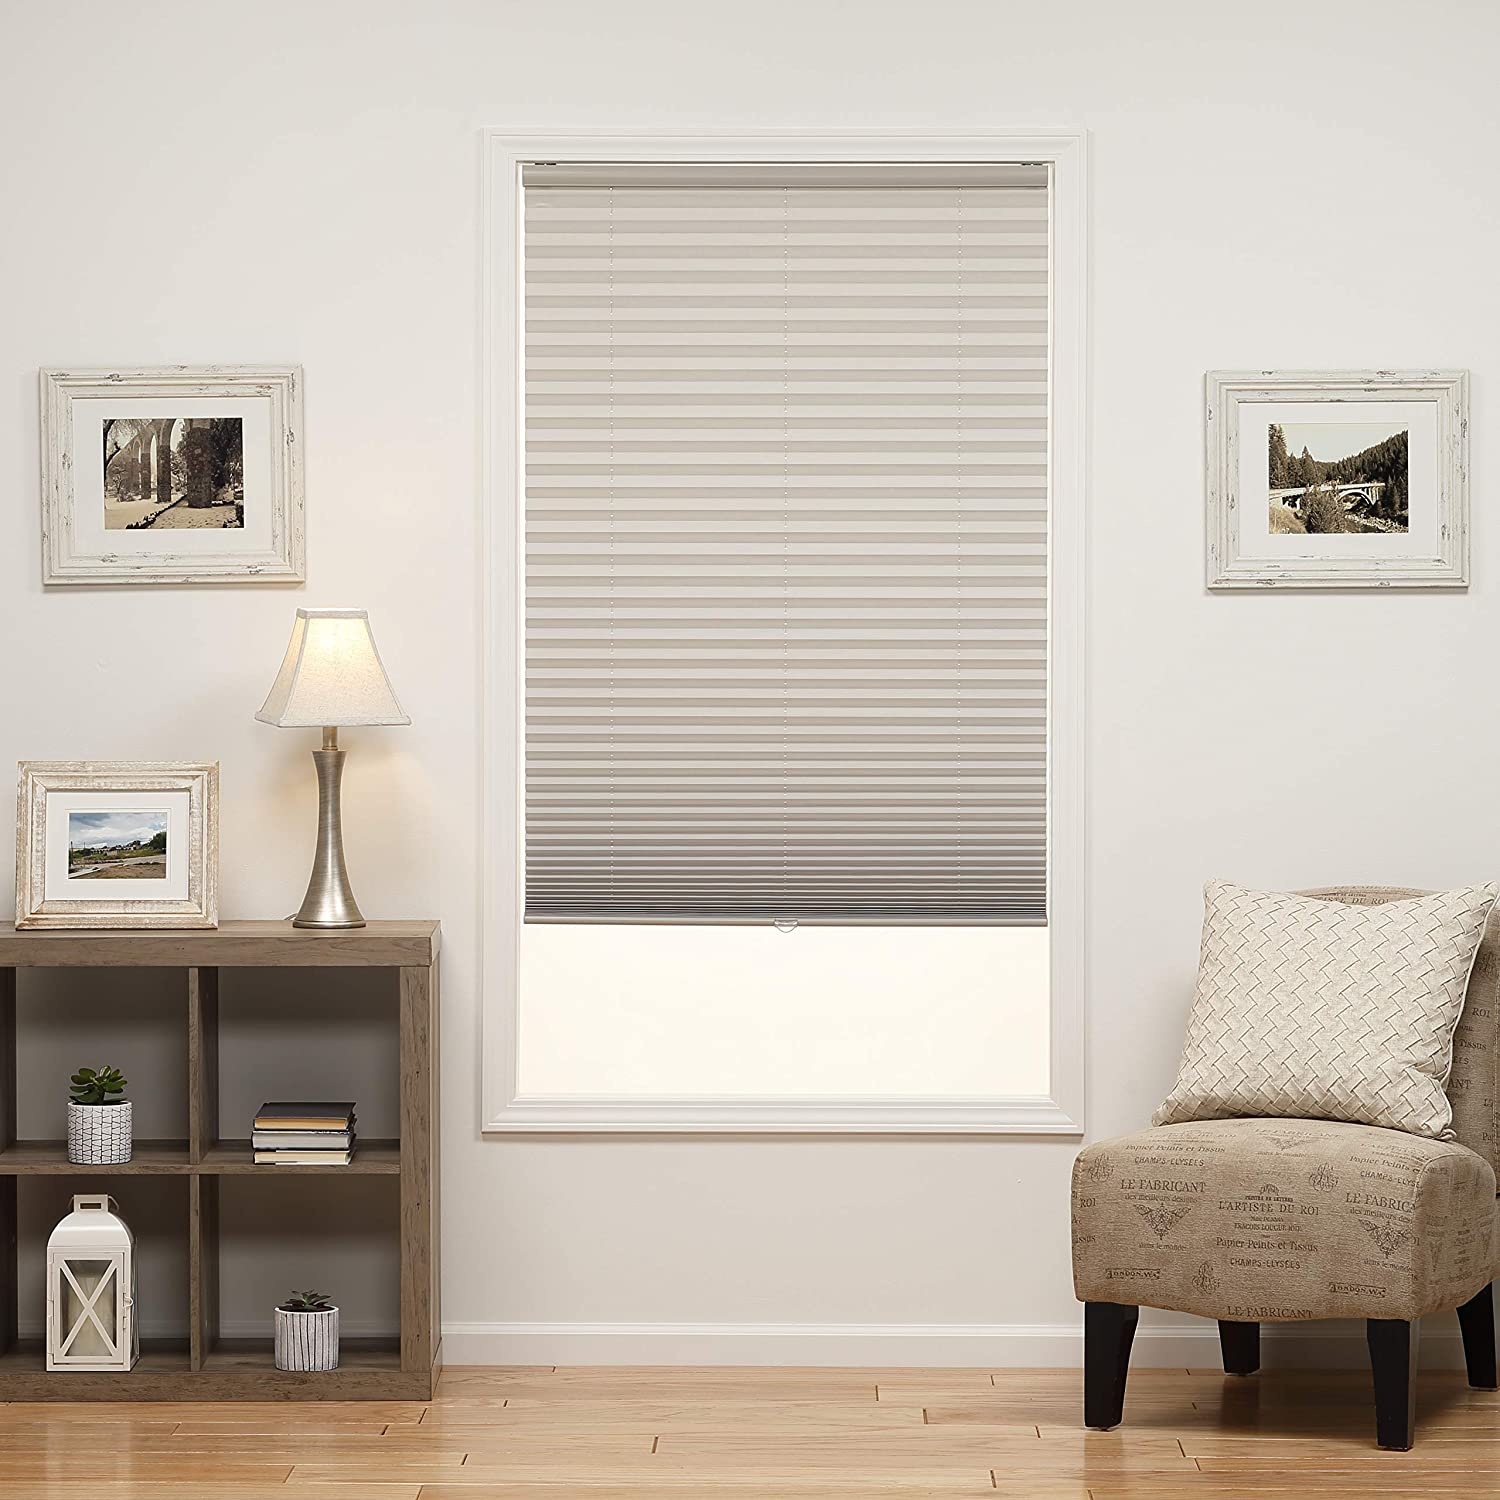 DEZ Furnishings QDLG340480 Cordless Light Filtering Pleated Shade 34W x 48L Inches Silver Gray